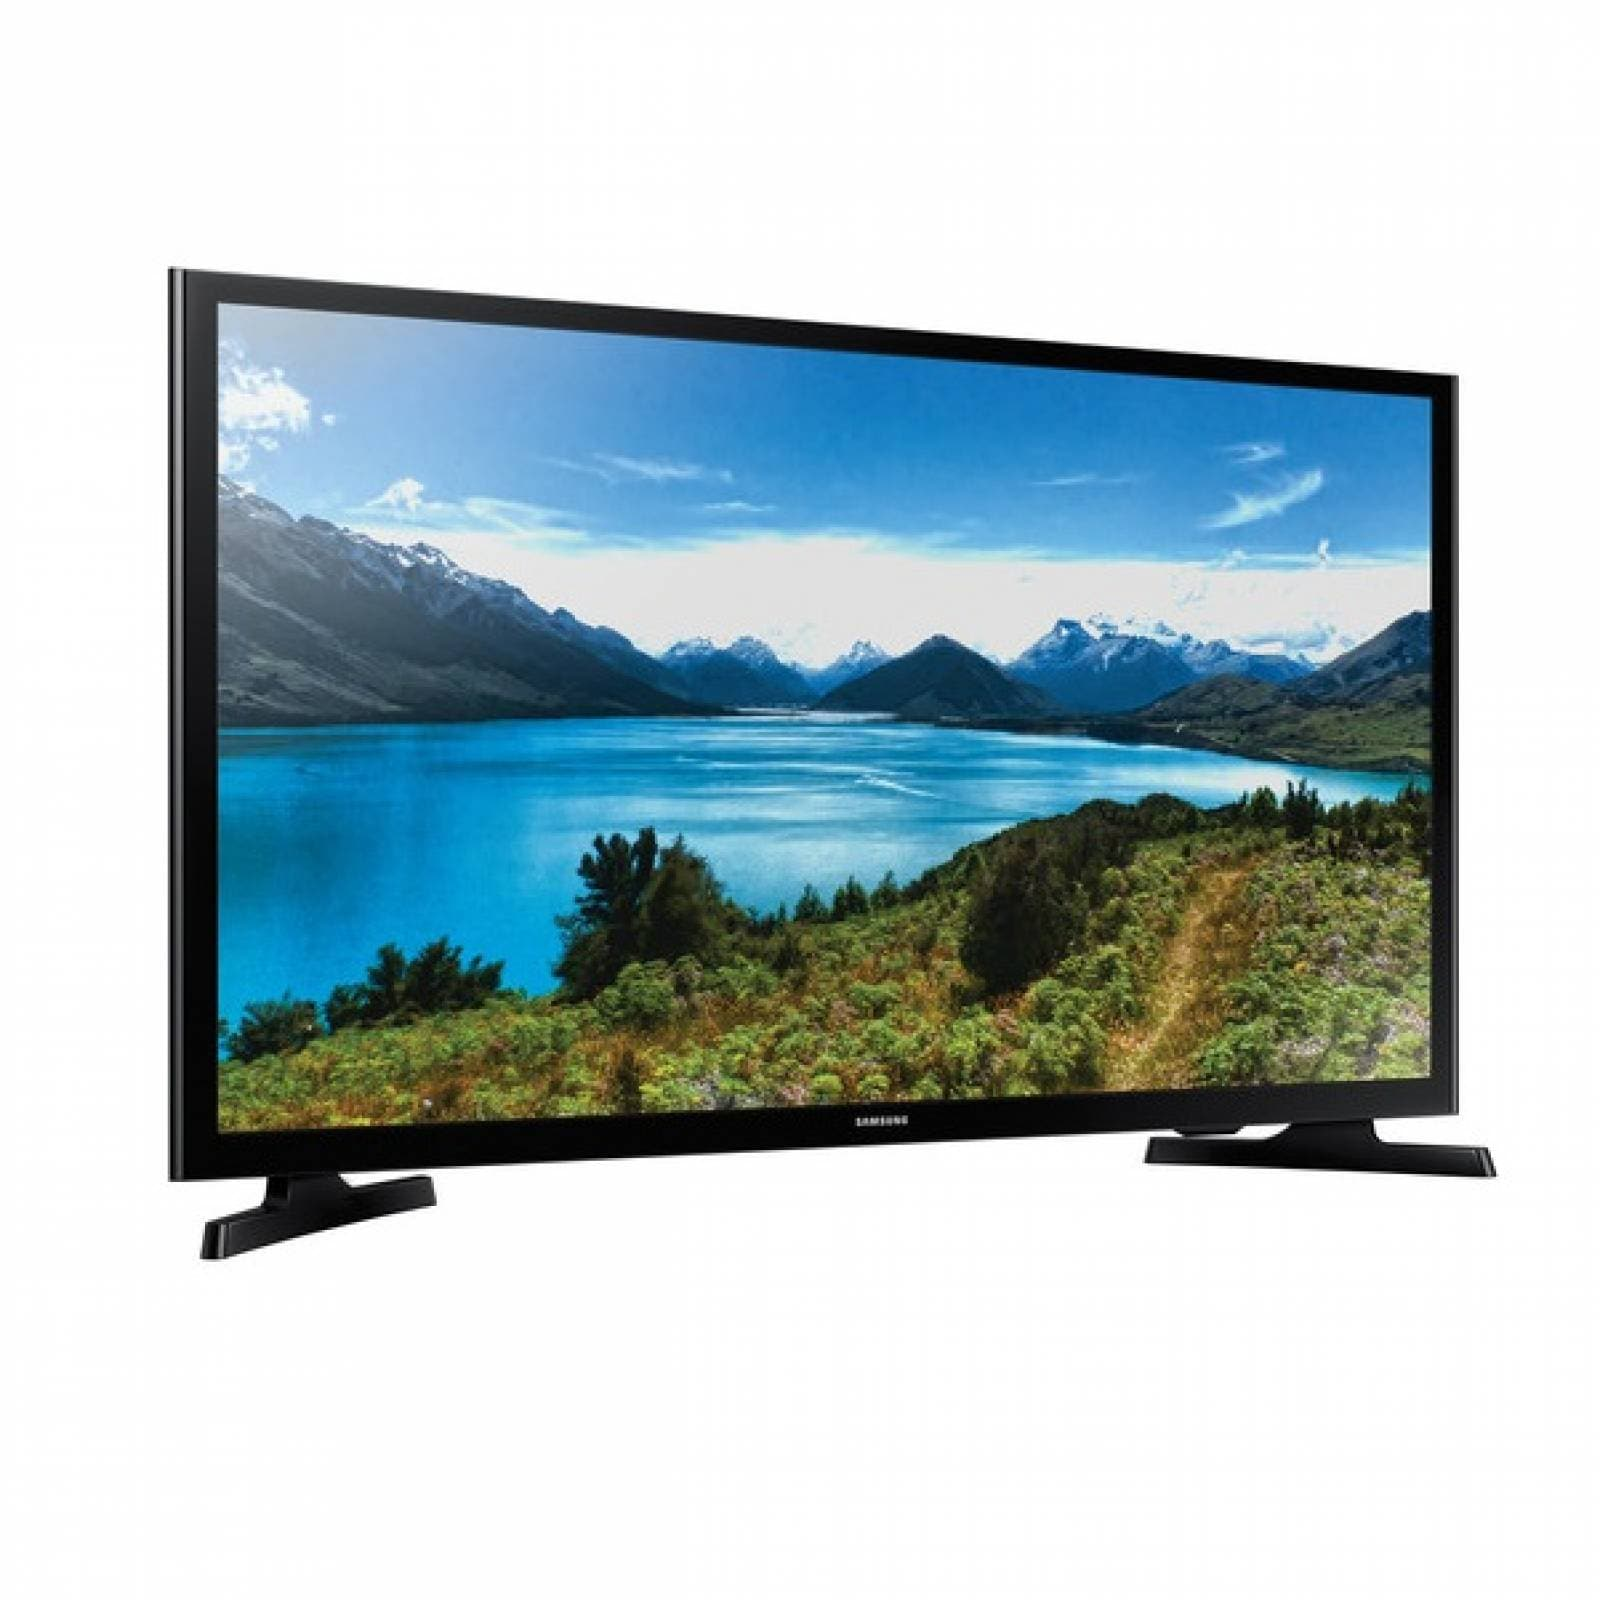 Pantalla Samsung Motion rate HDMI USB UN32J4000EFXZA - Reacondicionado